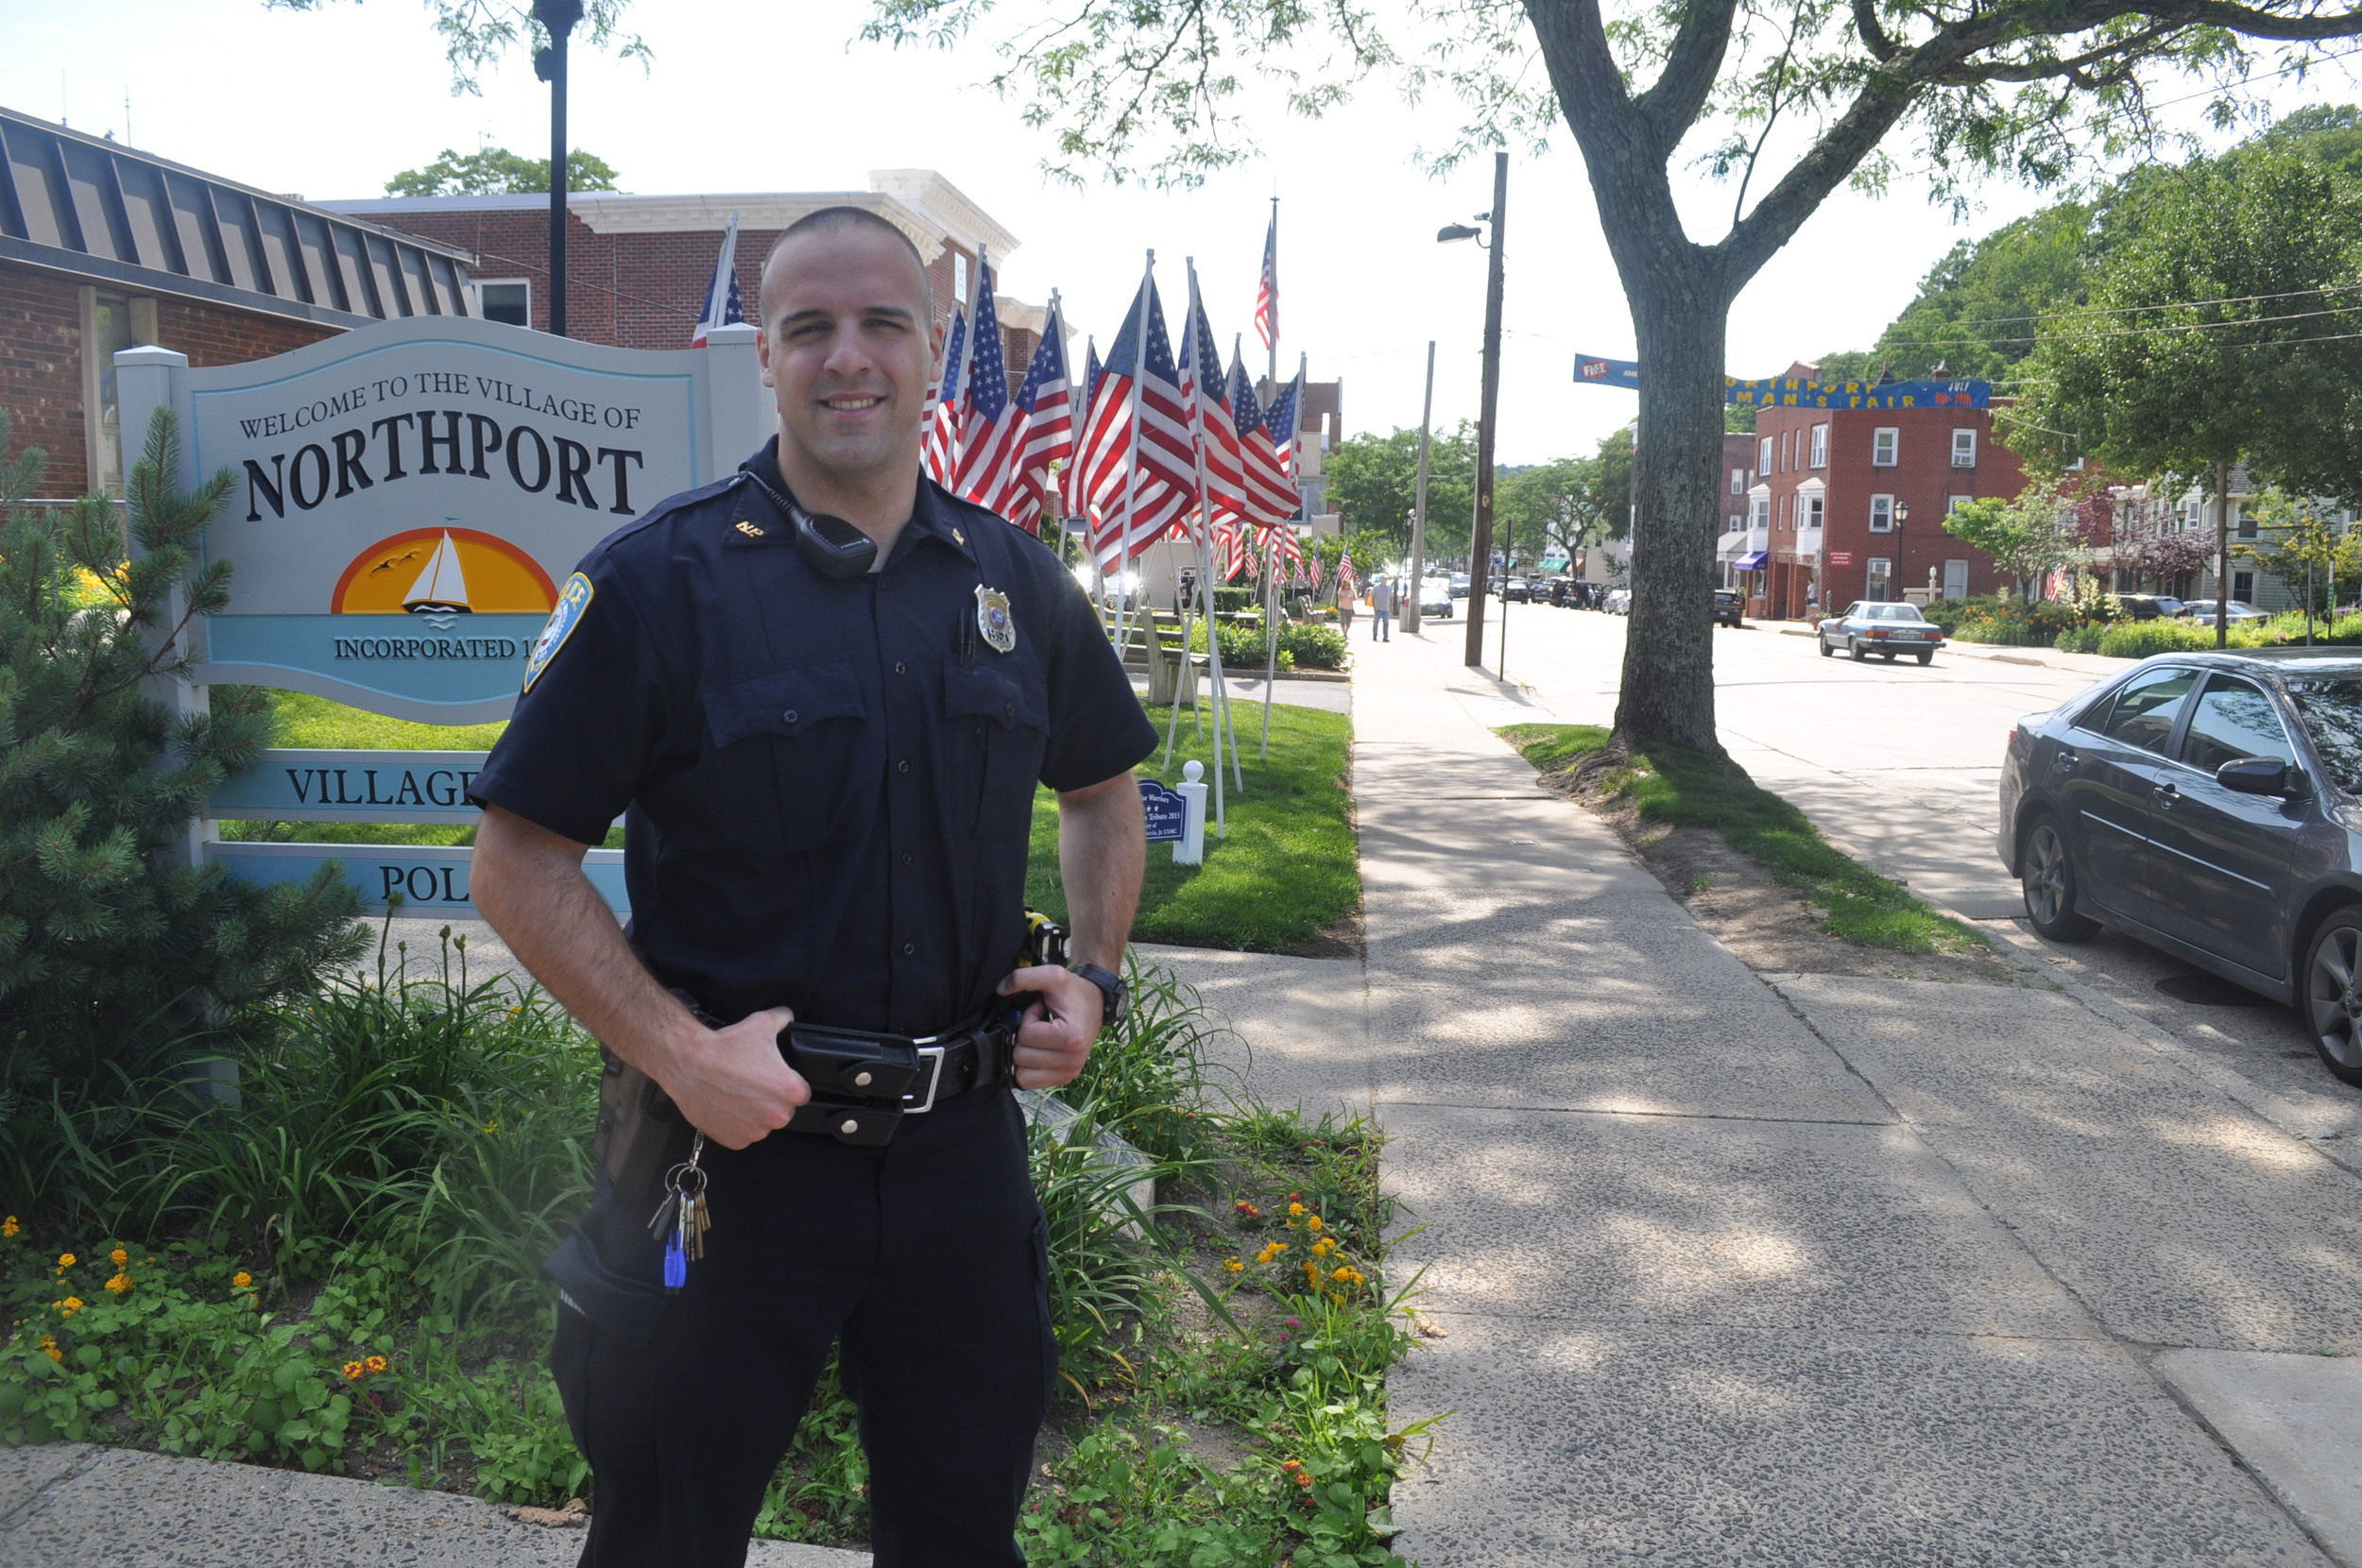 Northport PD's newest addition, Officer Matthew Merenda, has been on the beat for two weeks after graduating Suffolk County Police Academy.